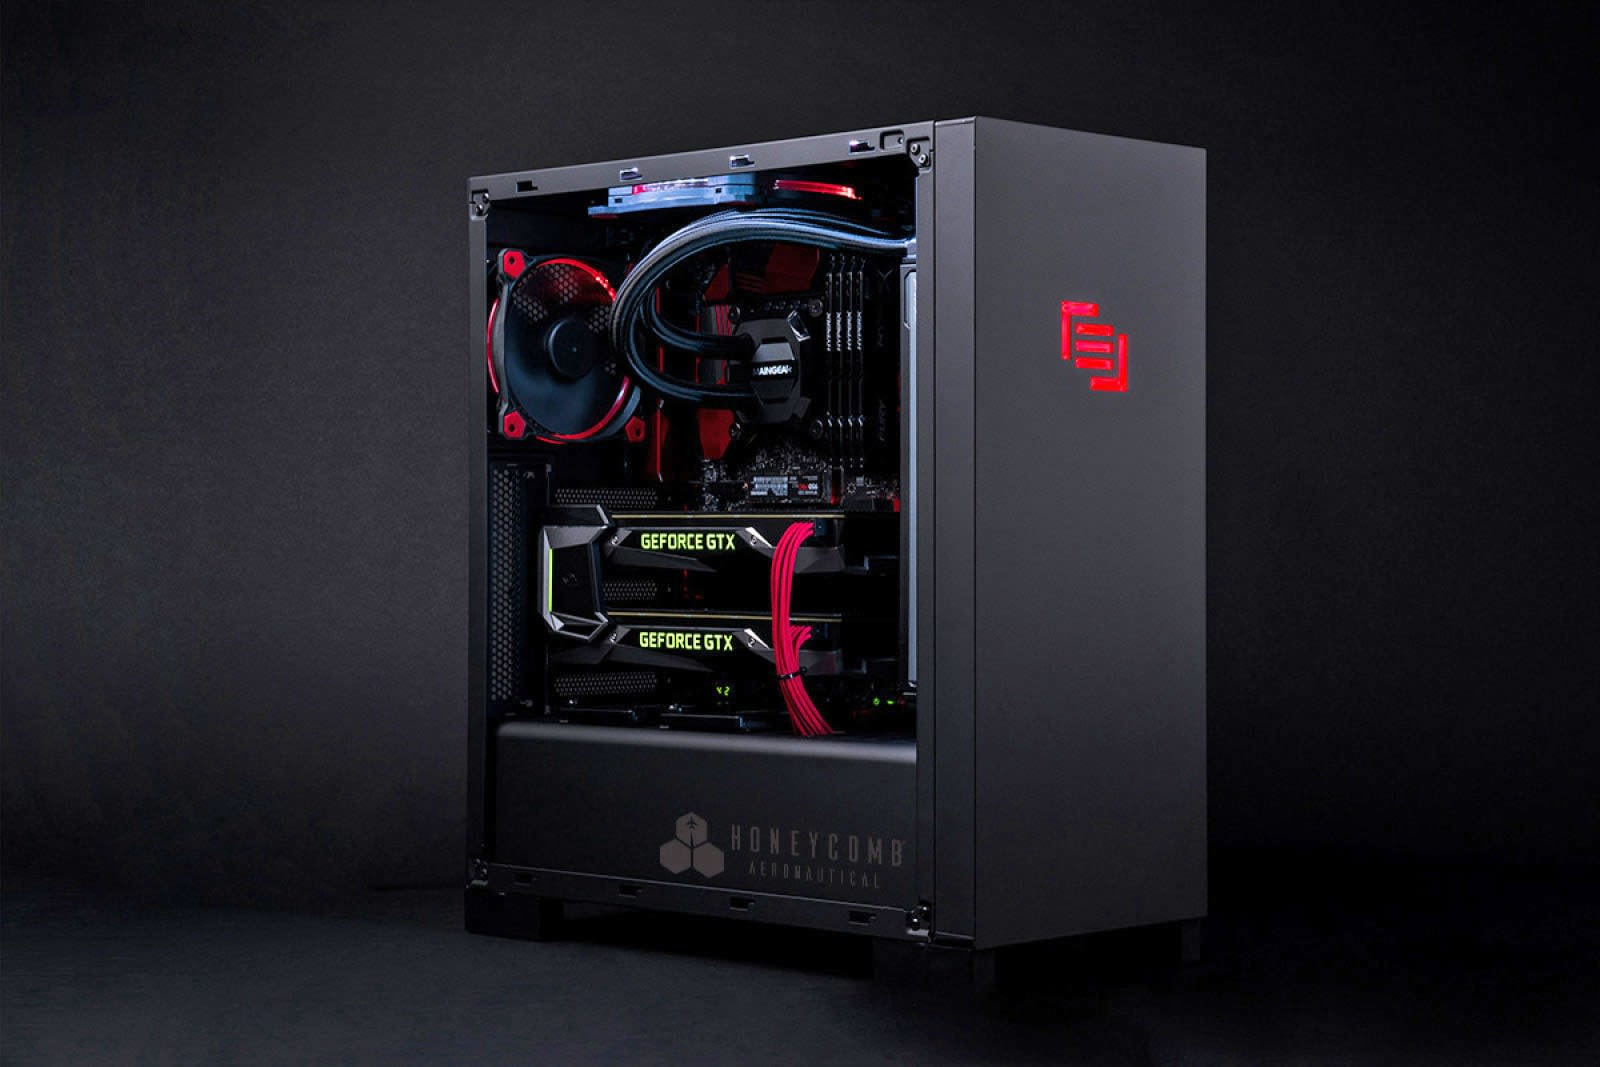 Maingear's latest PC is built for flight simulators